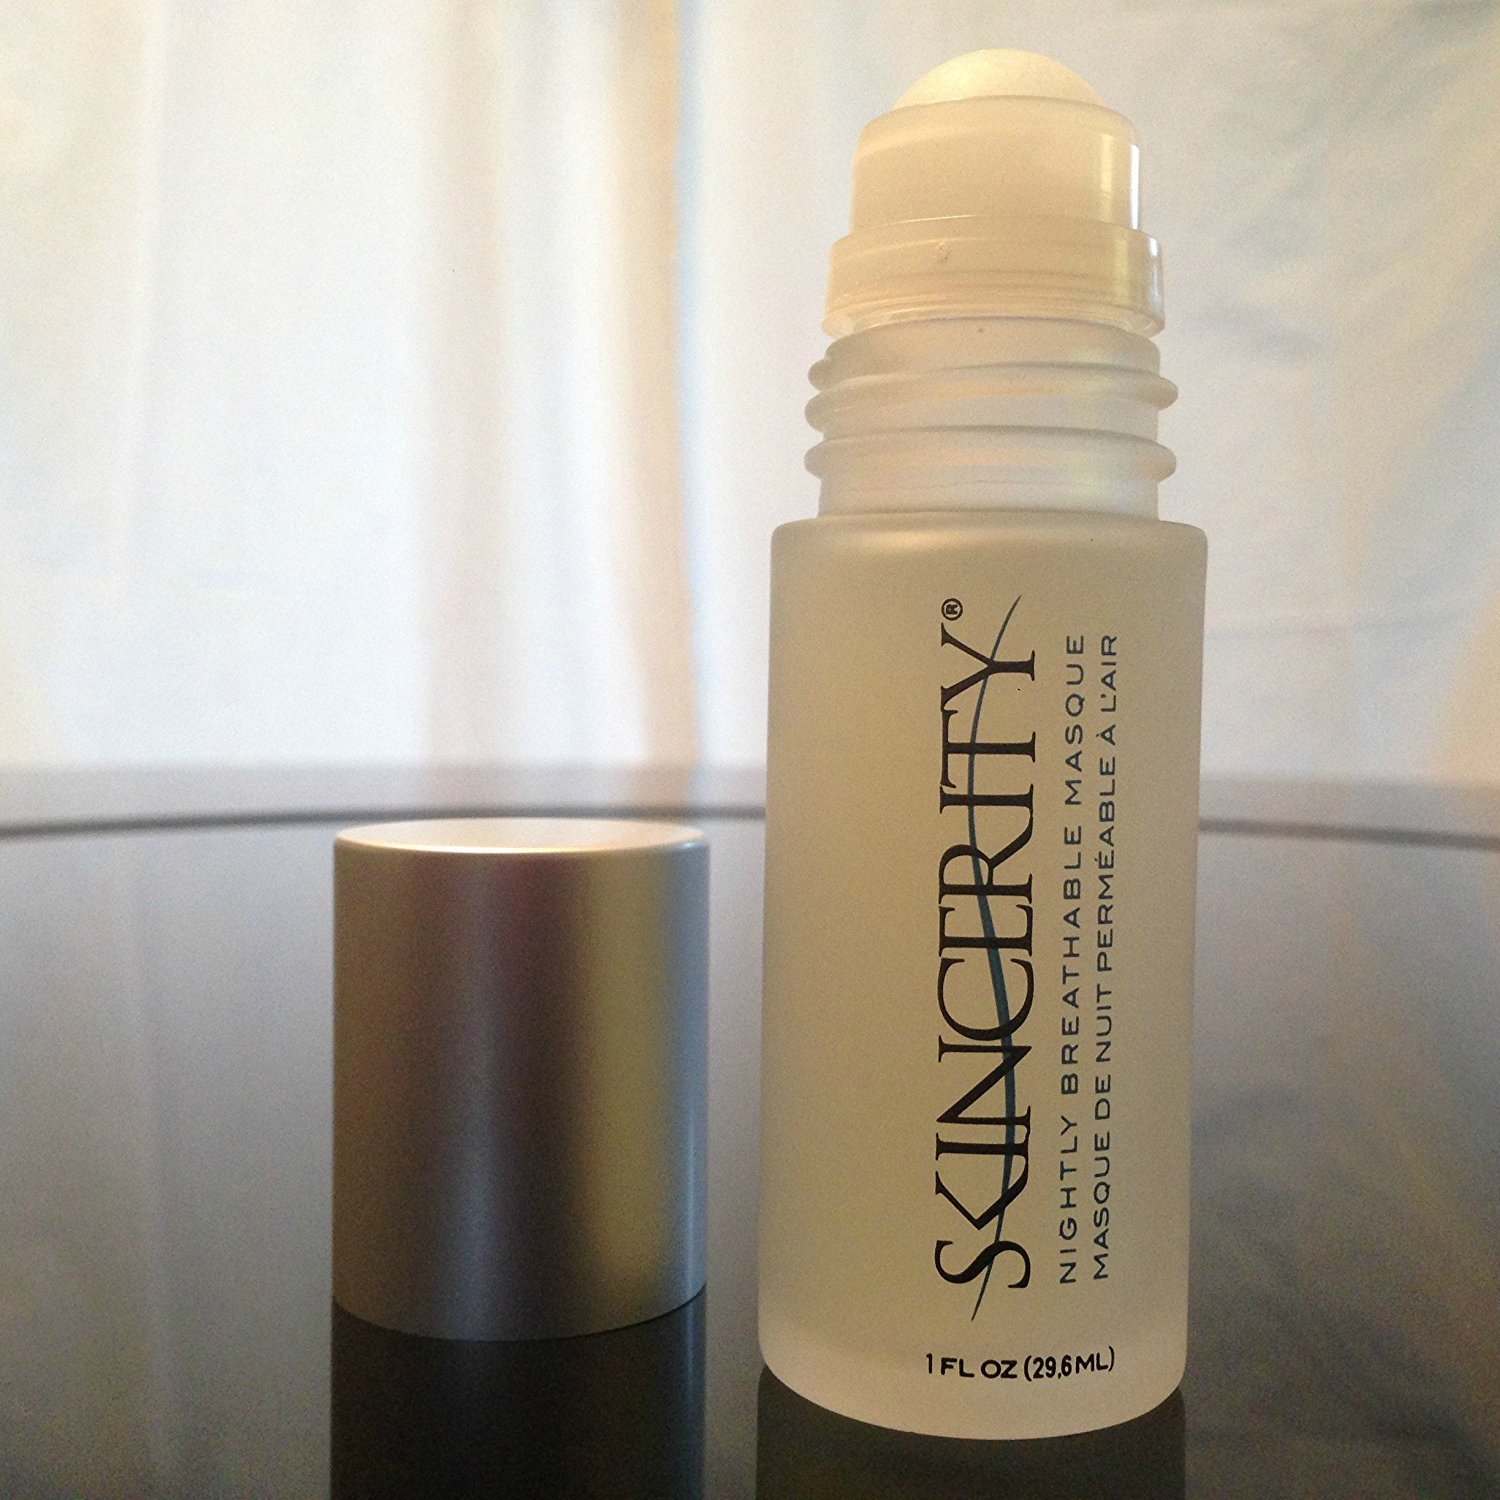 Skincerity Nucerity Nightly Breathable Barrier Masque (29.6ml) (3 bottle)